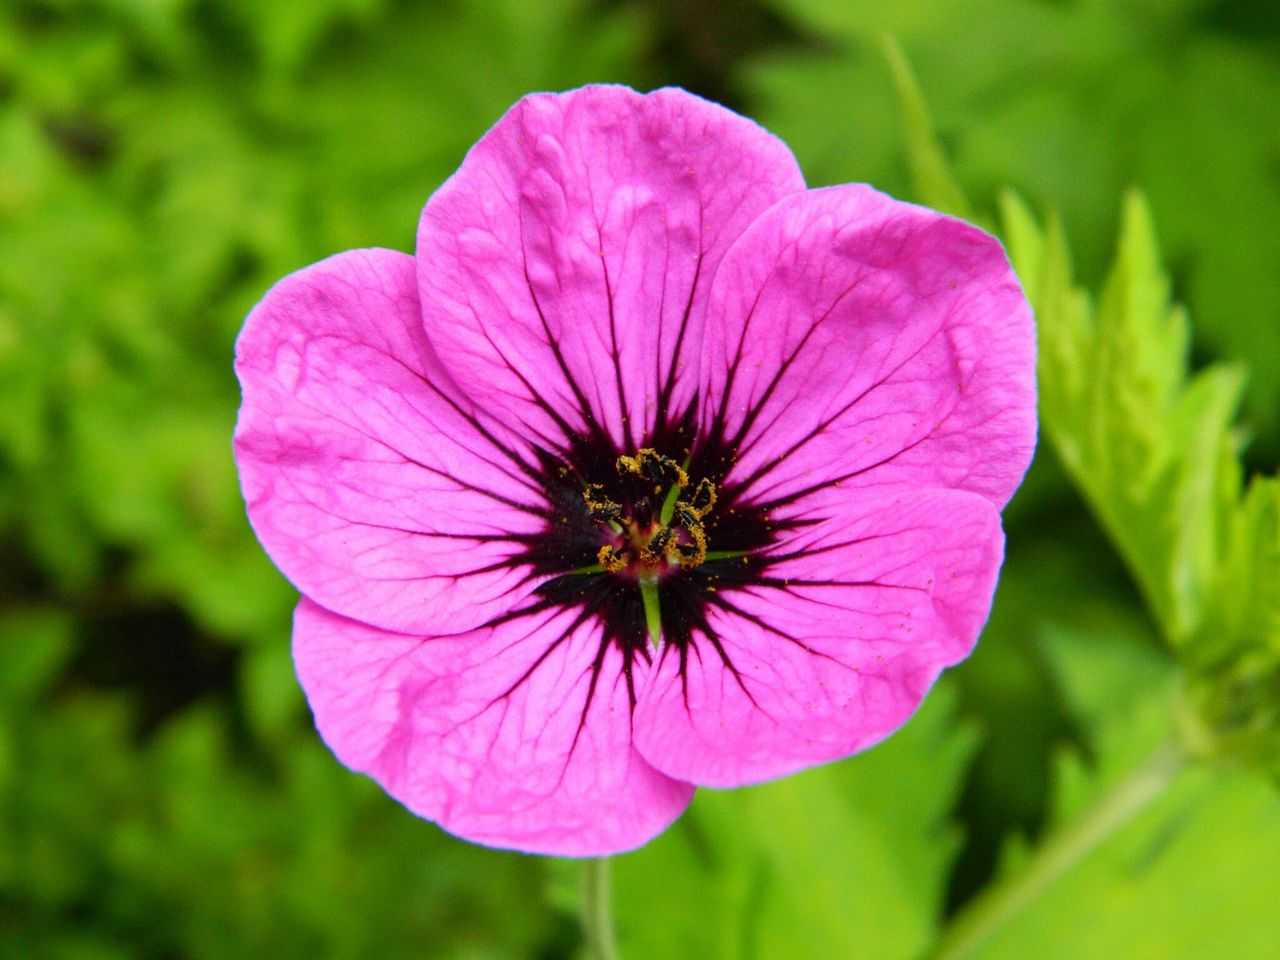 flower, nature, petal, growth, flower head, fragility, beauty in nature, plant, freshness, blooming, no people, day, outdoors, close-up